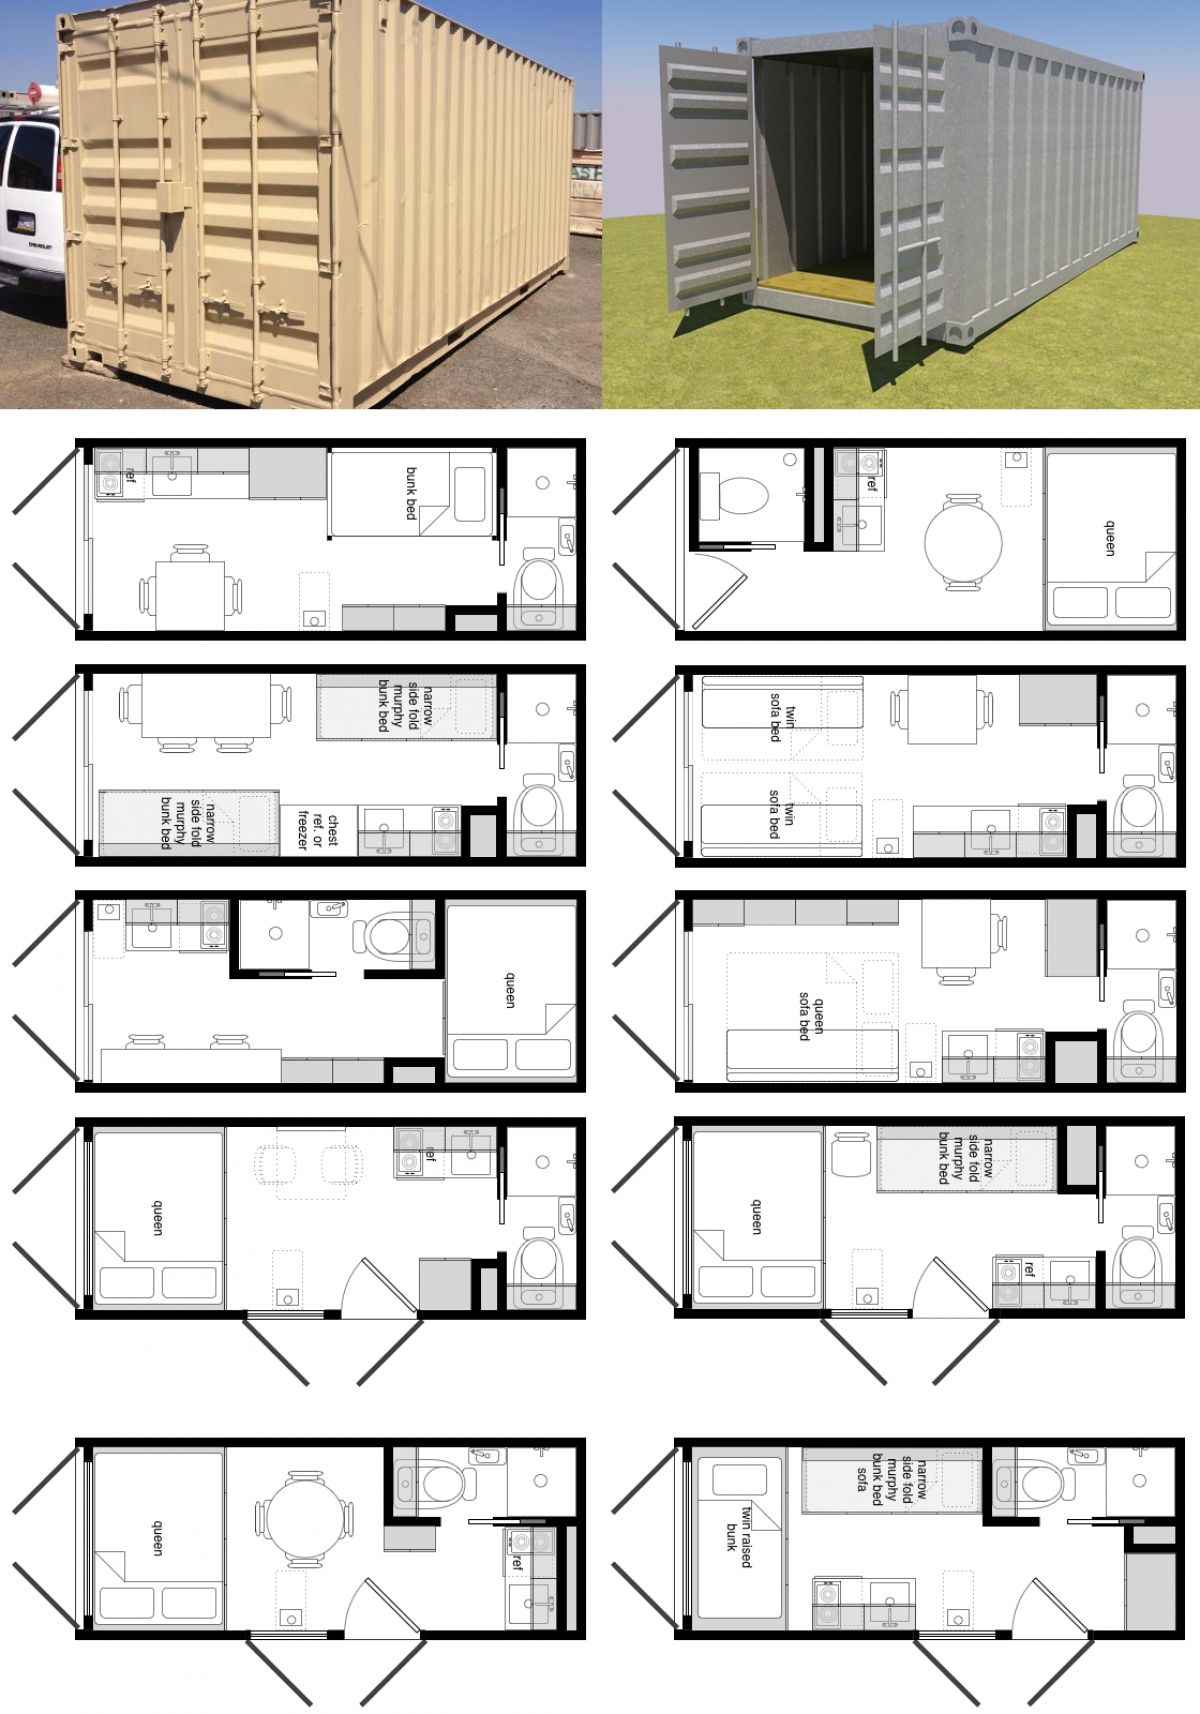 Best Kitchen Gallery: Cargo Container Home Plans In 20 Foot Shipping Container Floor Plan of Cargo Container Homes Floor Plans  on rachelxblog.com